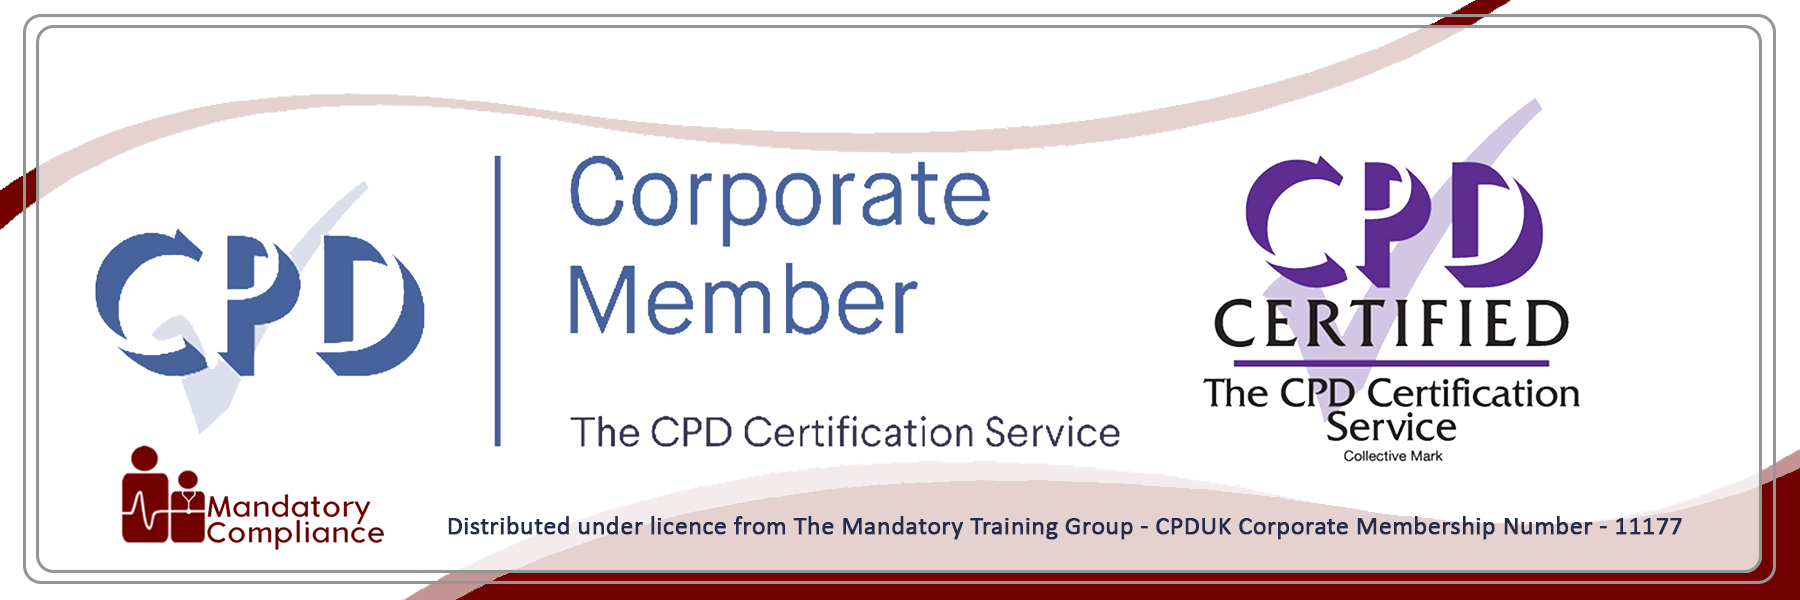 Introduction to HIPAA for Covered Entities - Online Training Course - The Mandatory Training Group UK -